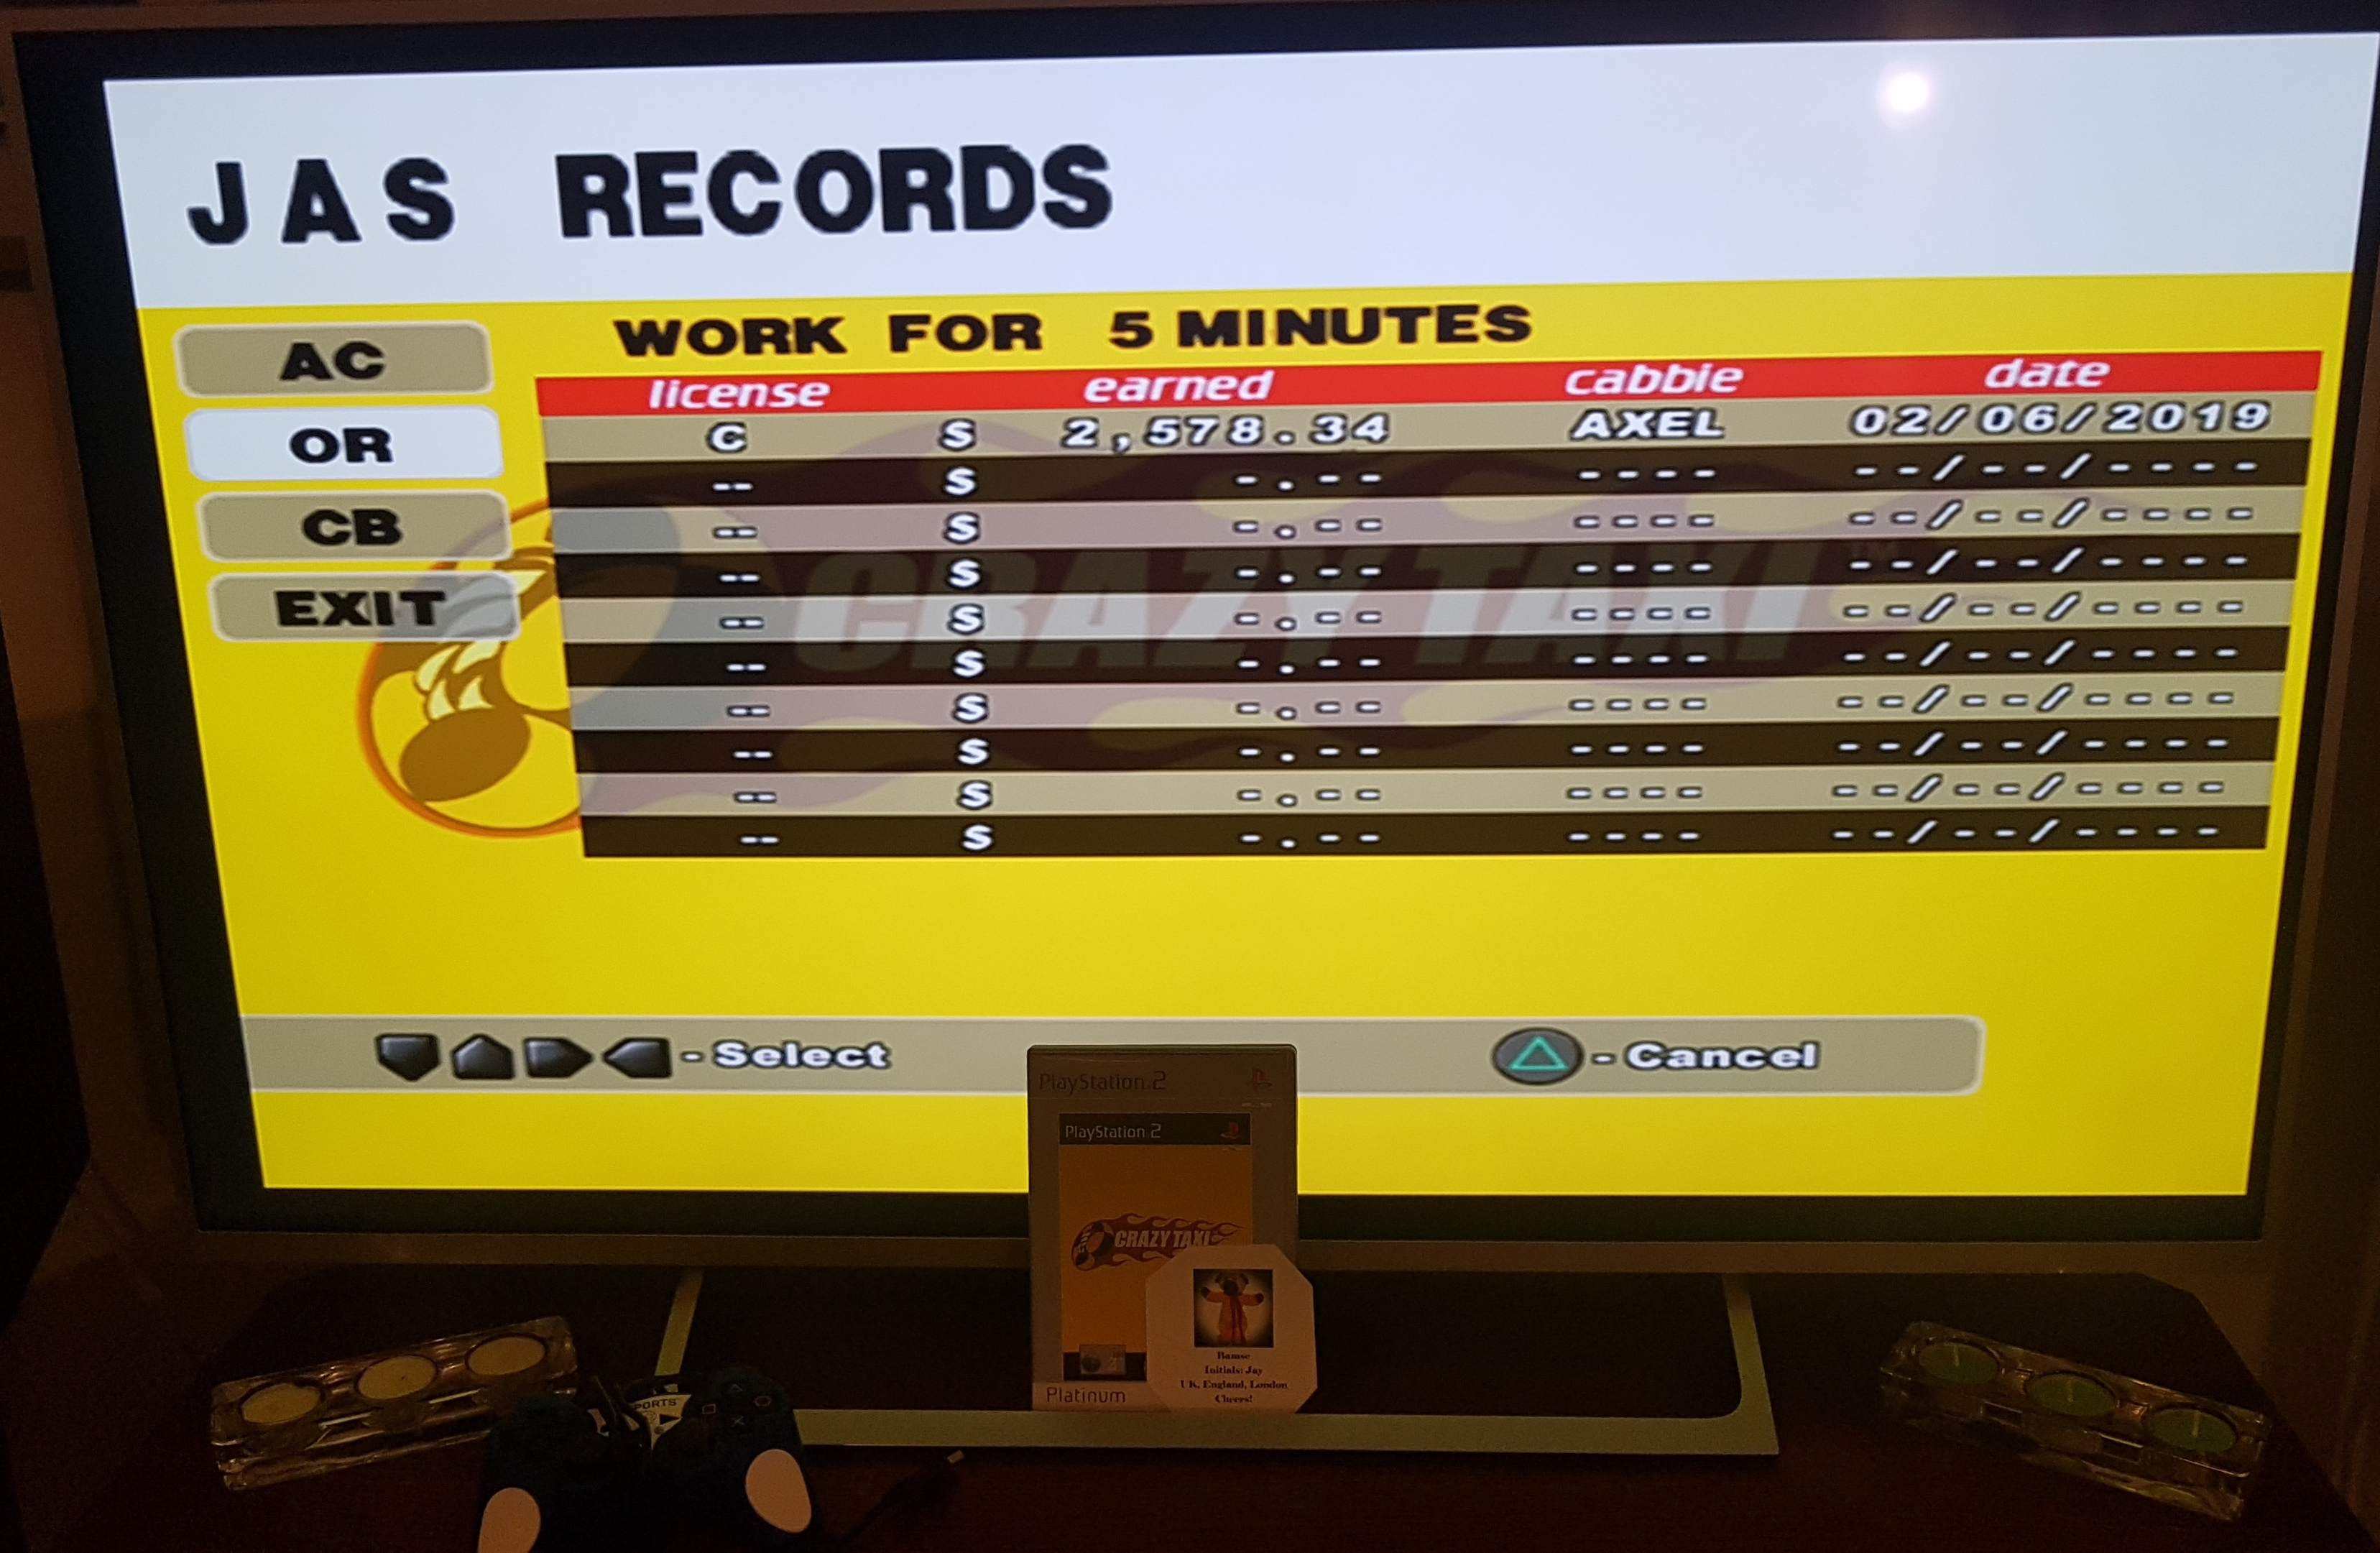 Bamse: Crazy Taxi [Original/5 Minutes] (Playstation 2) 2,578 points on 2019-02-05 17:17:21